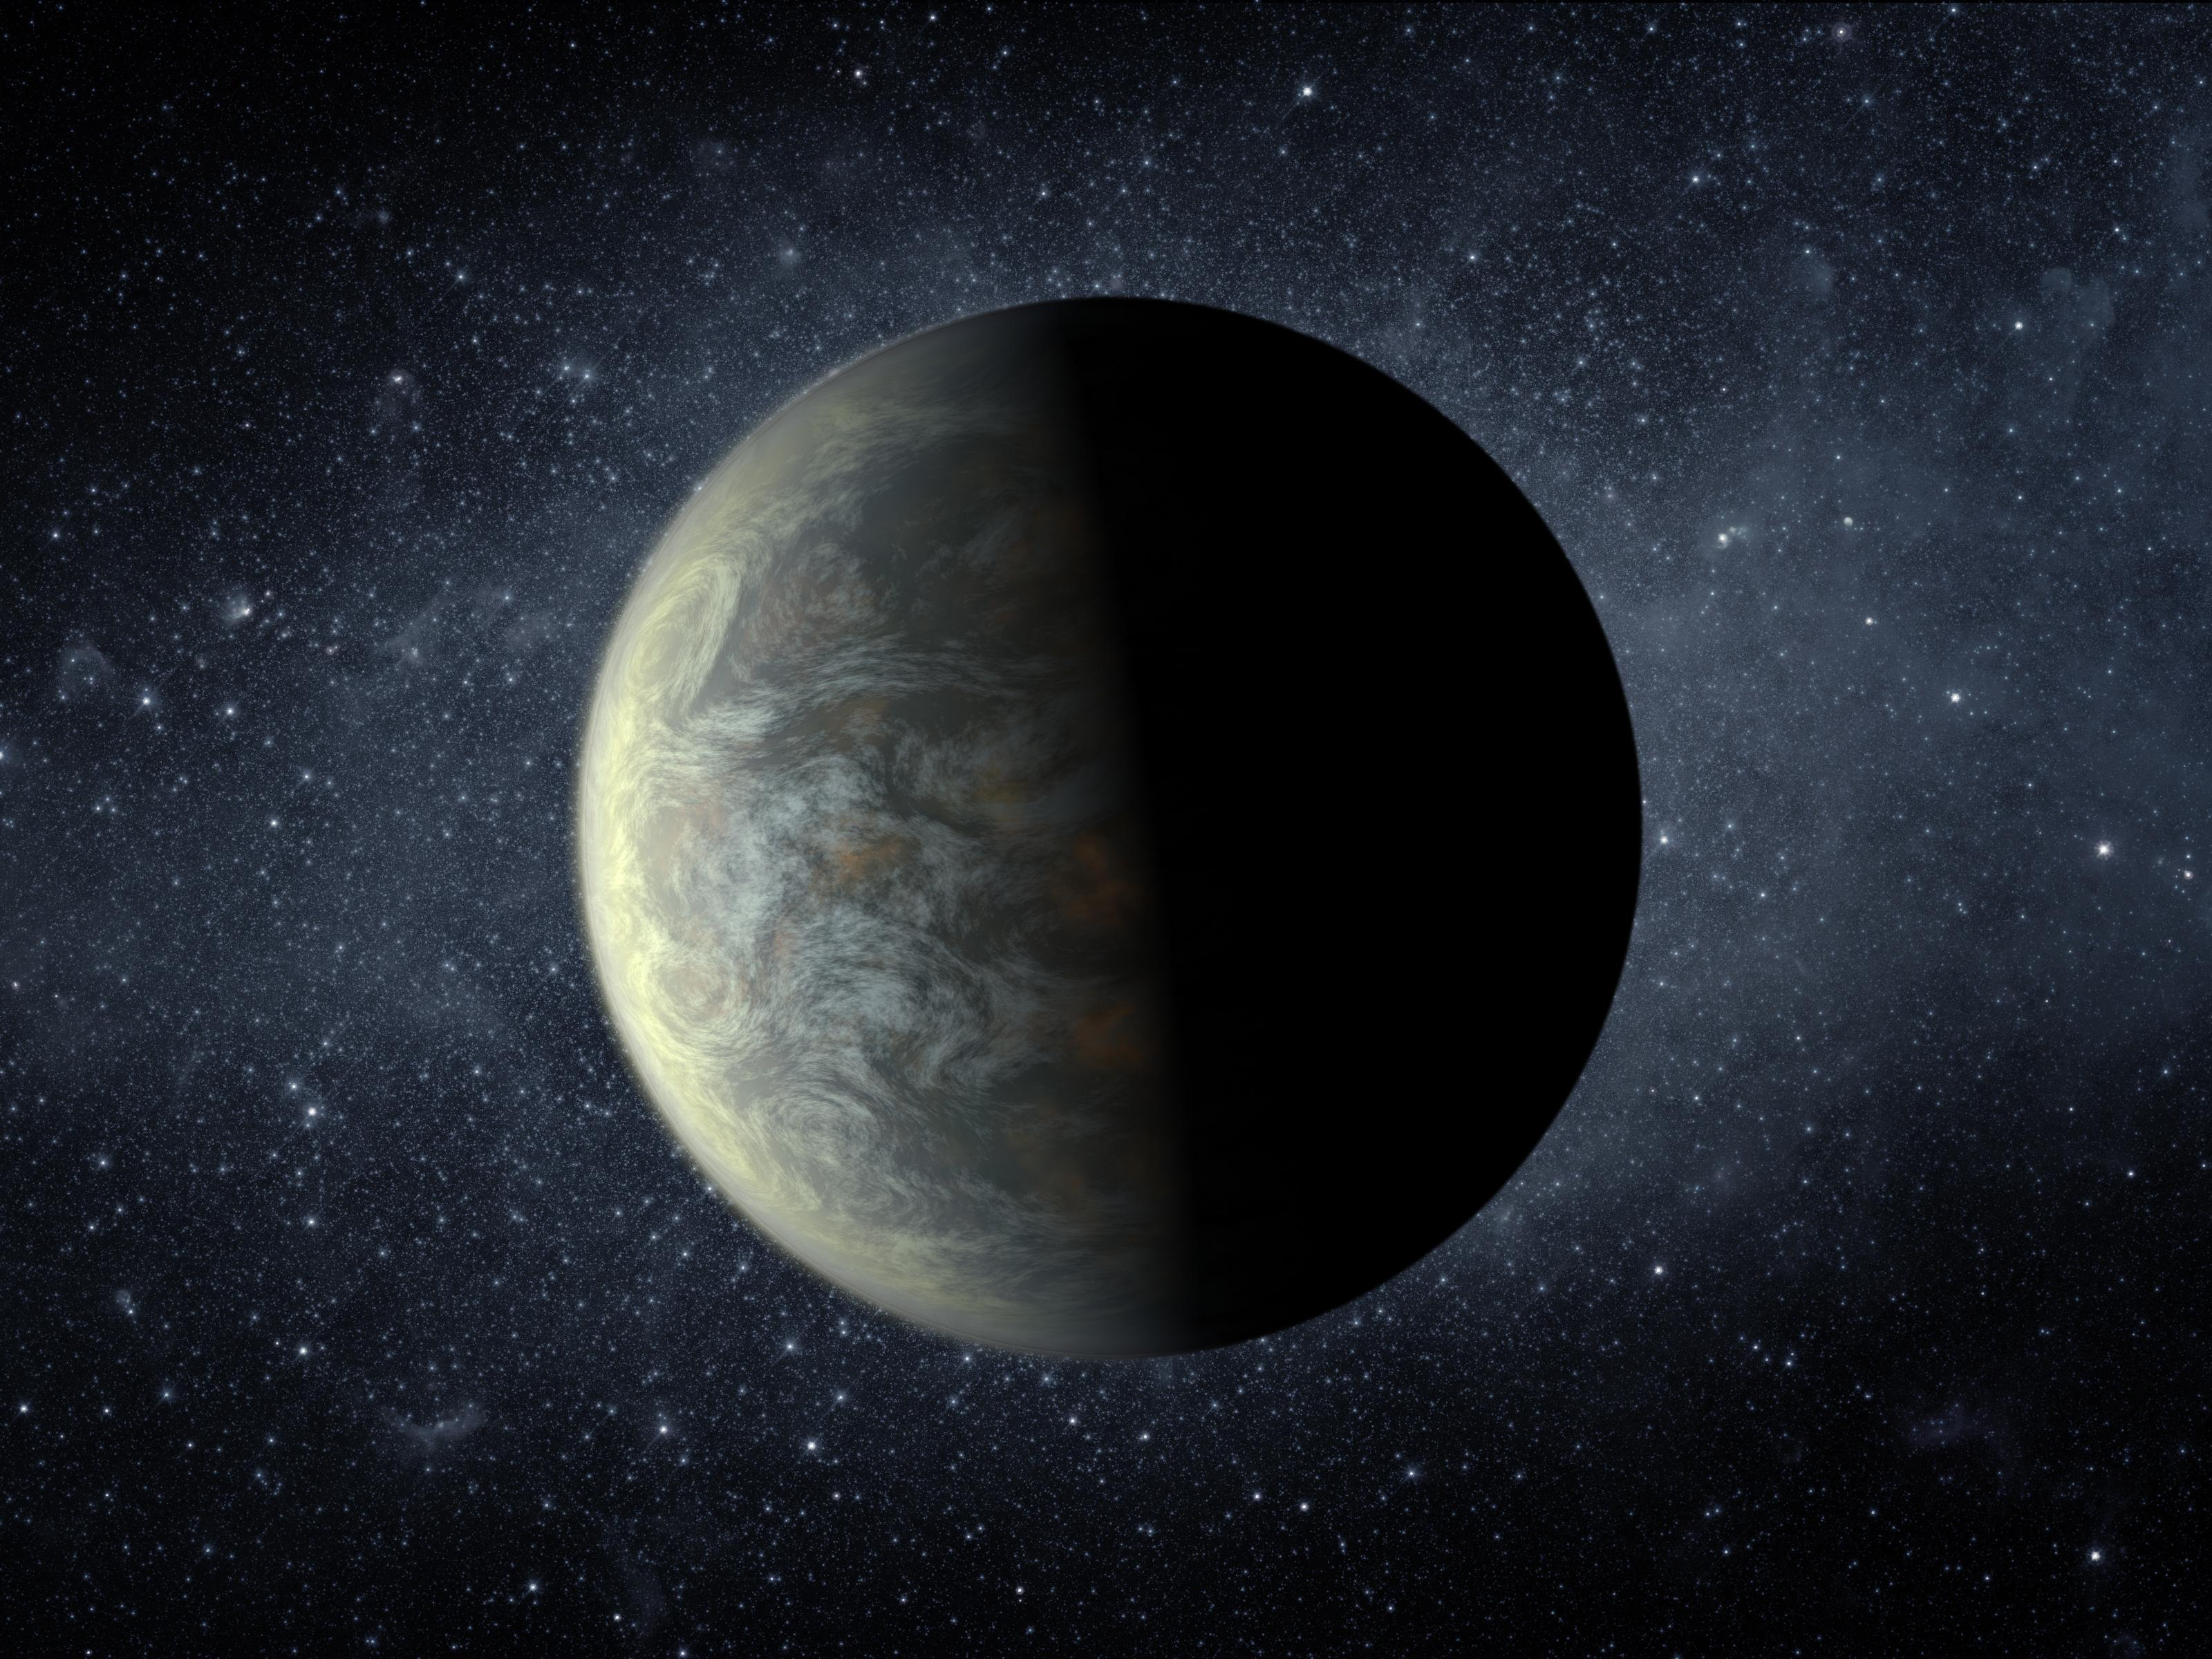 earth like planets kepler 22b - photo #15